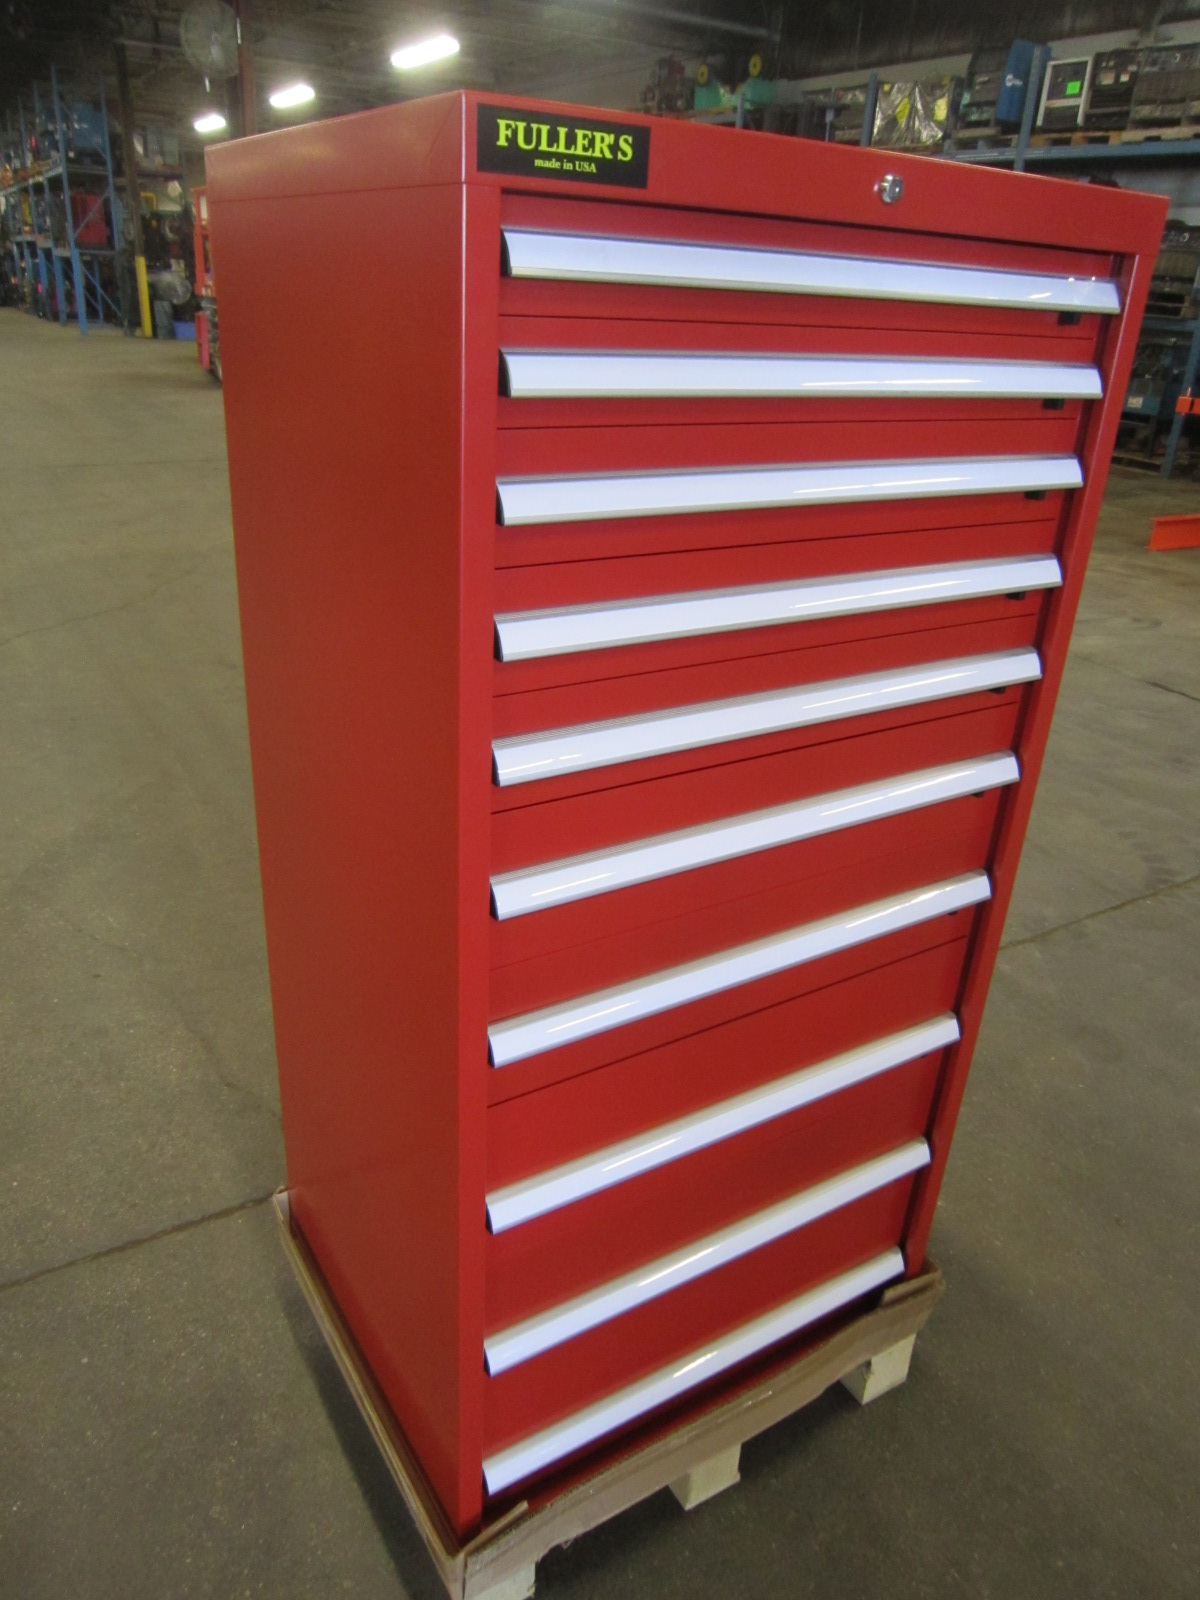 inter dim painted drawer cabinet machinery d lista x w cleaned plant storage cabinets drawers htm h sales overall